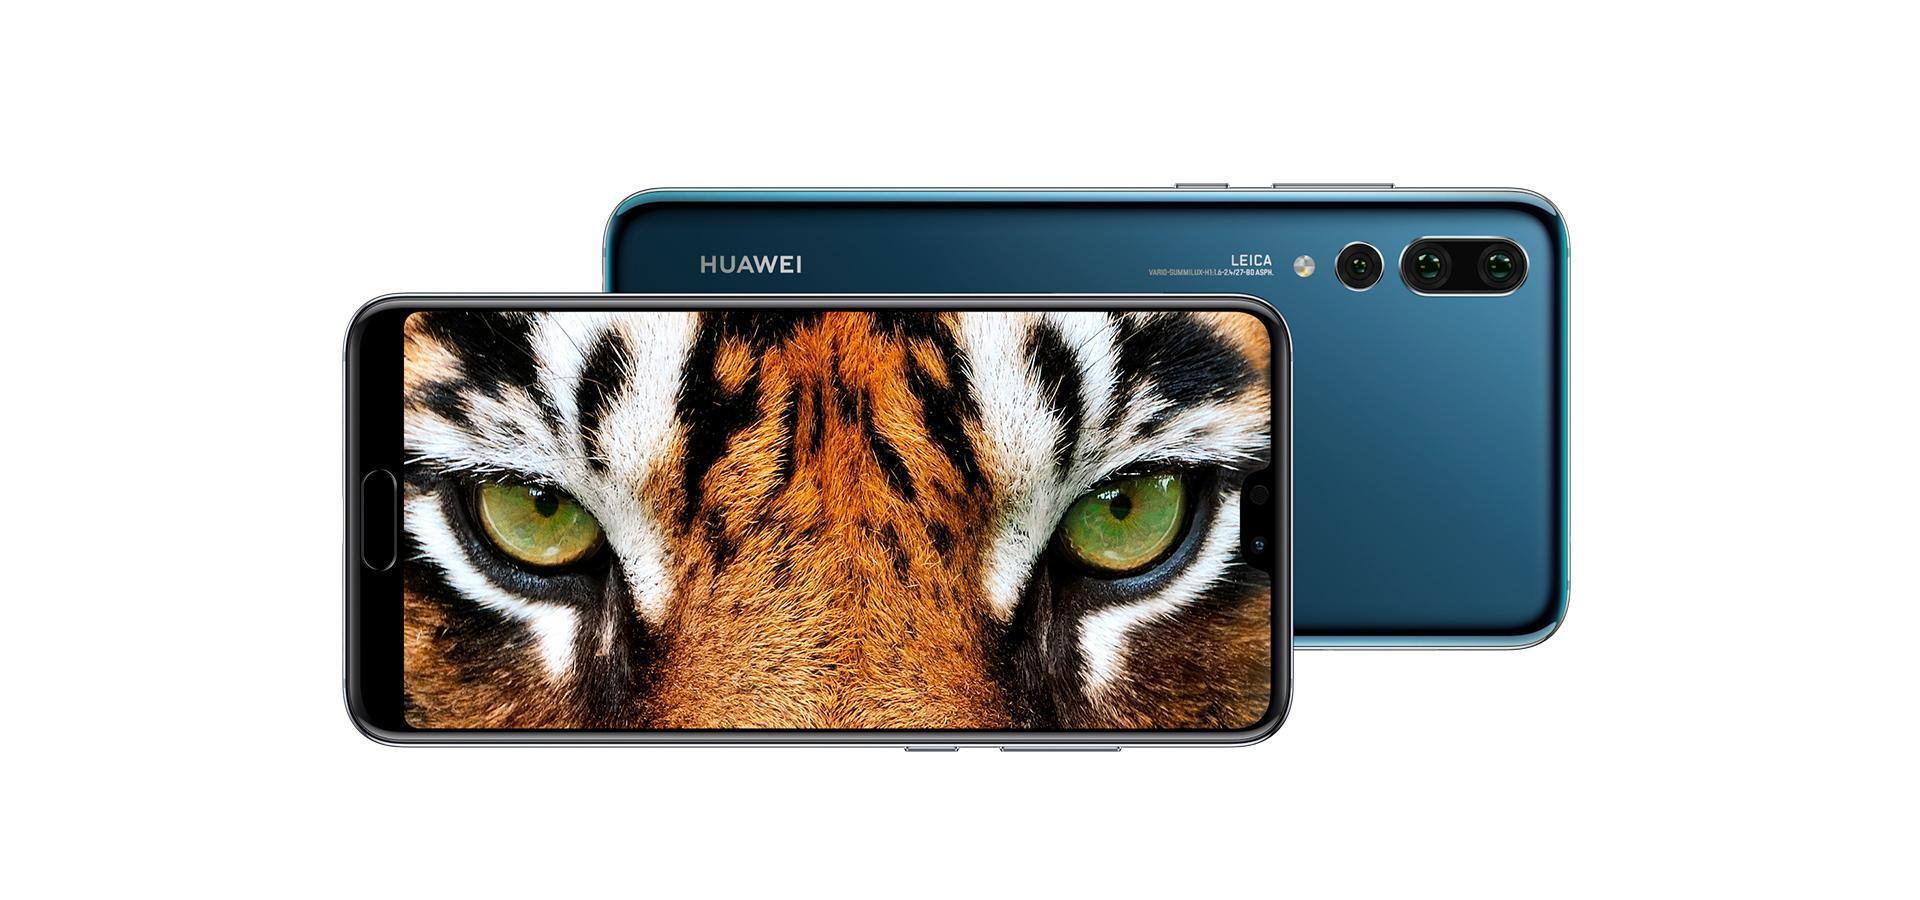 low priced 0f702 e073e HUAWEI P20 Pro Smartphone | Phones | HUAWEI Kenya